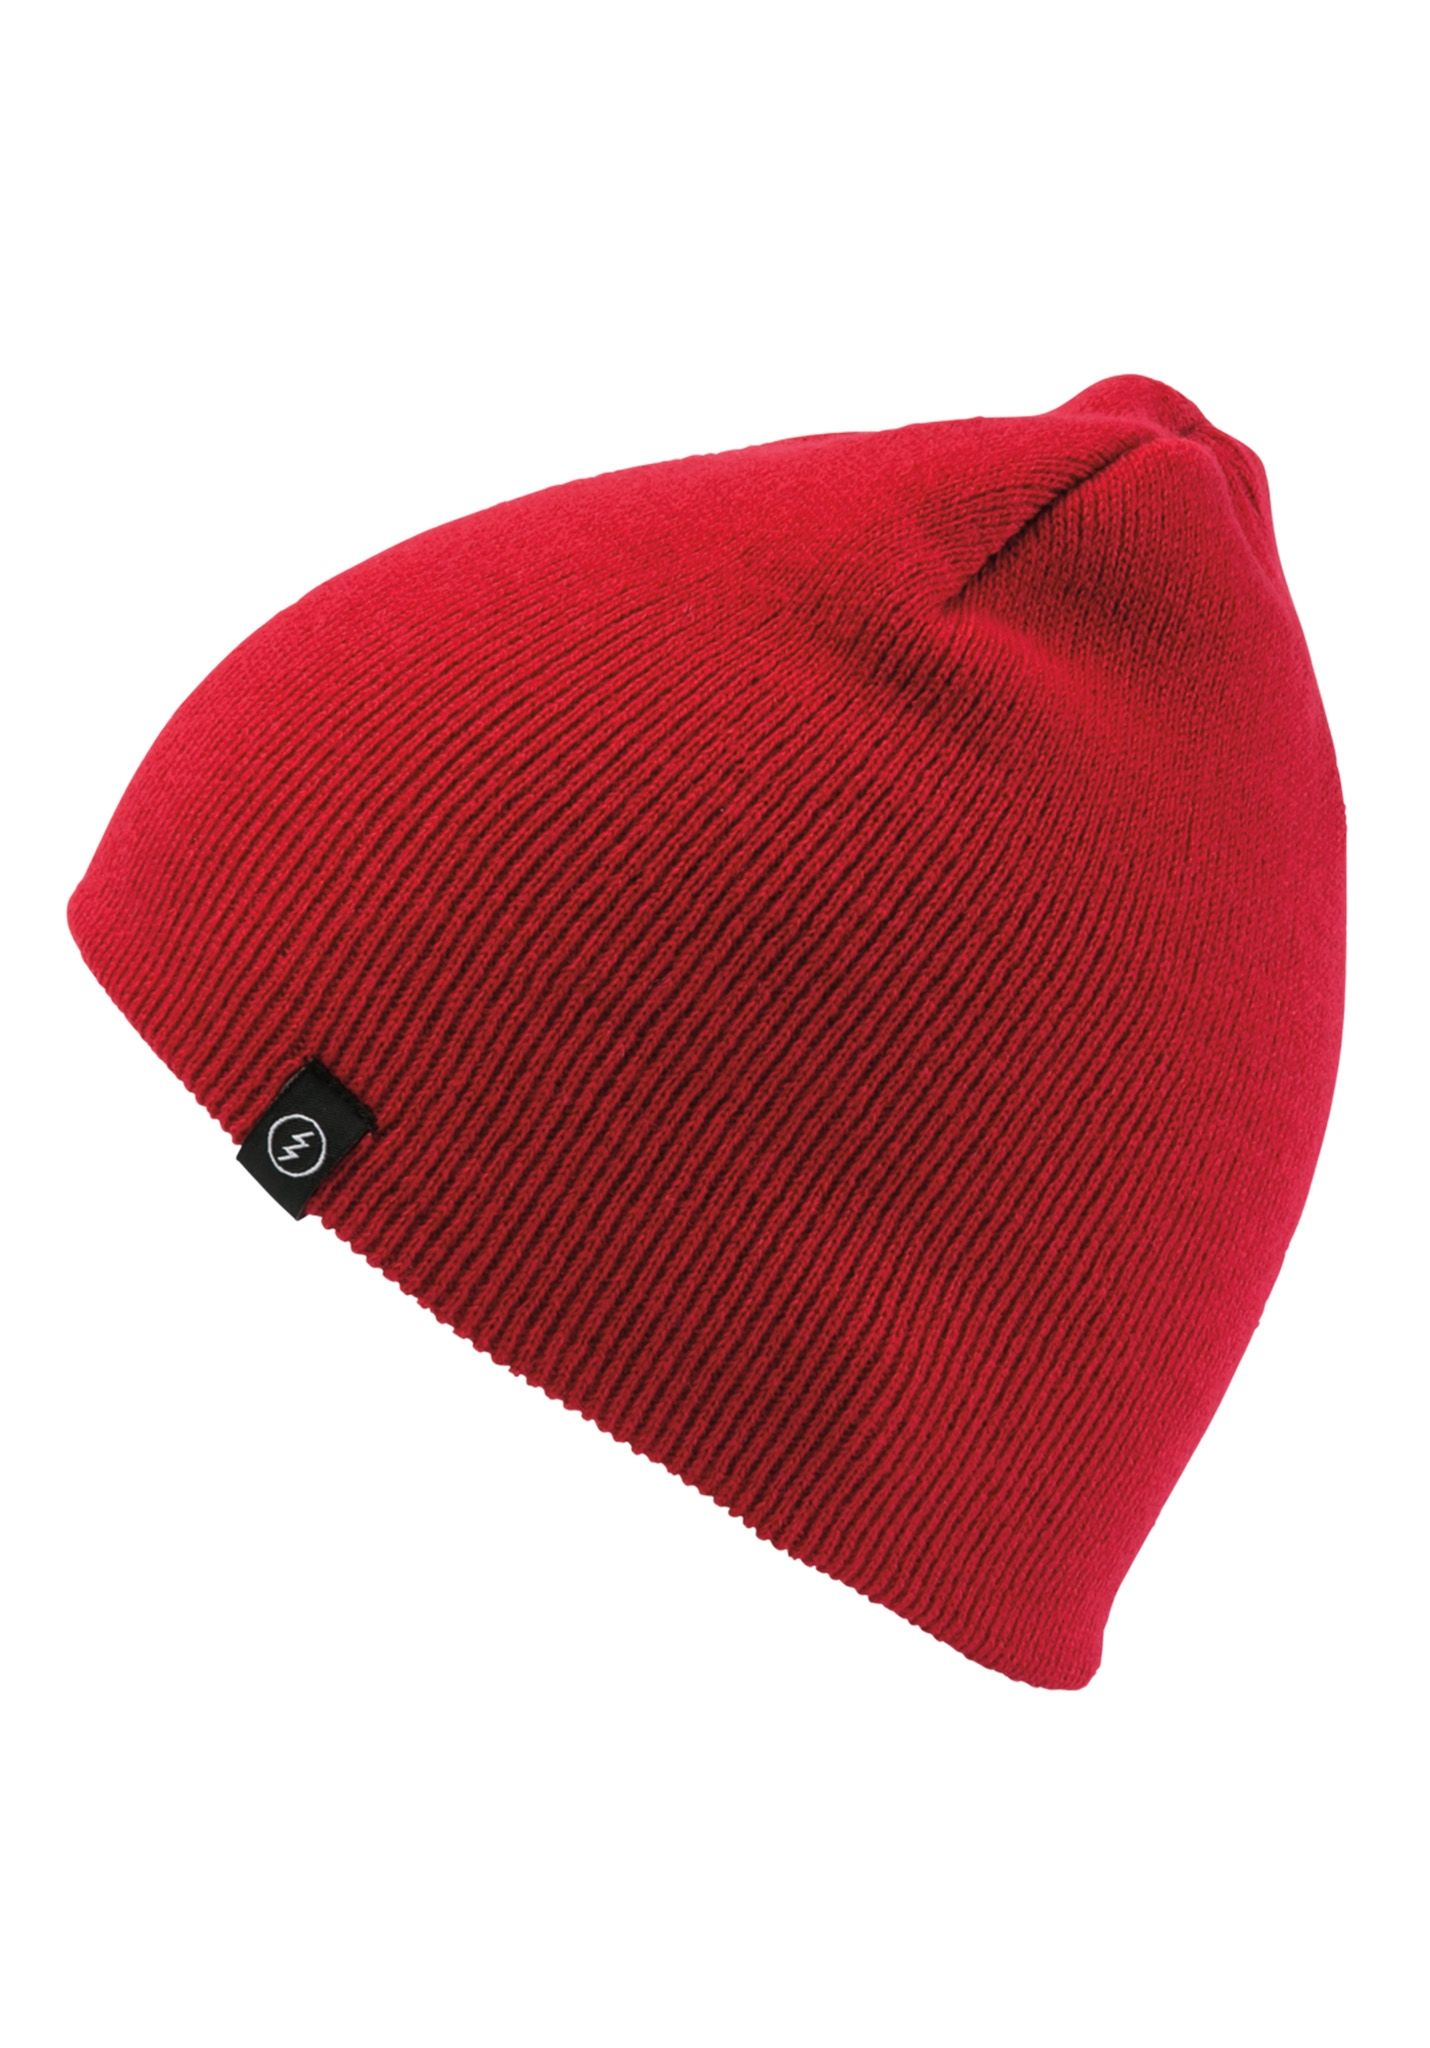 Electric Bender - Beanie - Red - Planet Sports 3532b408681